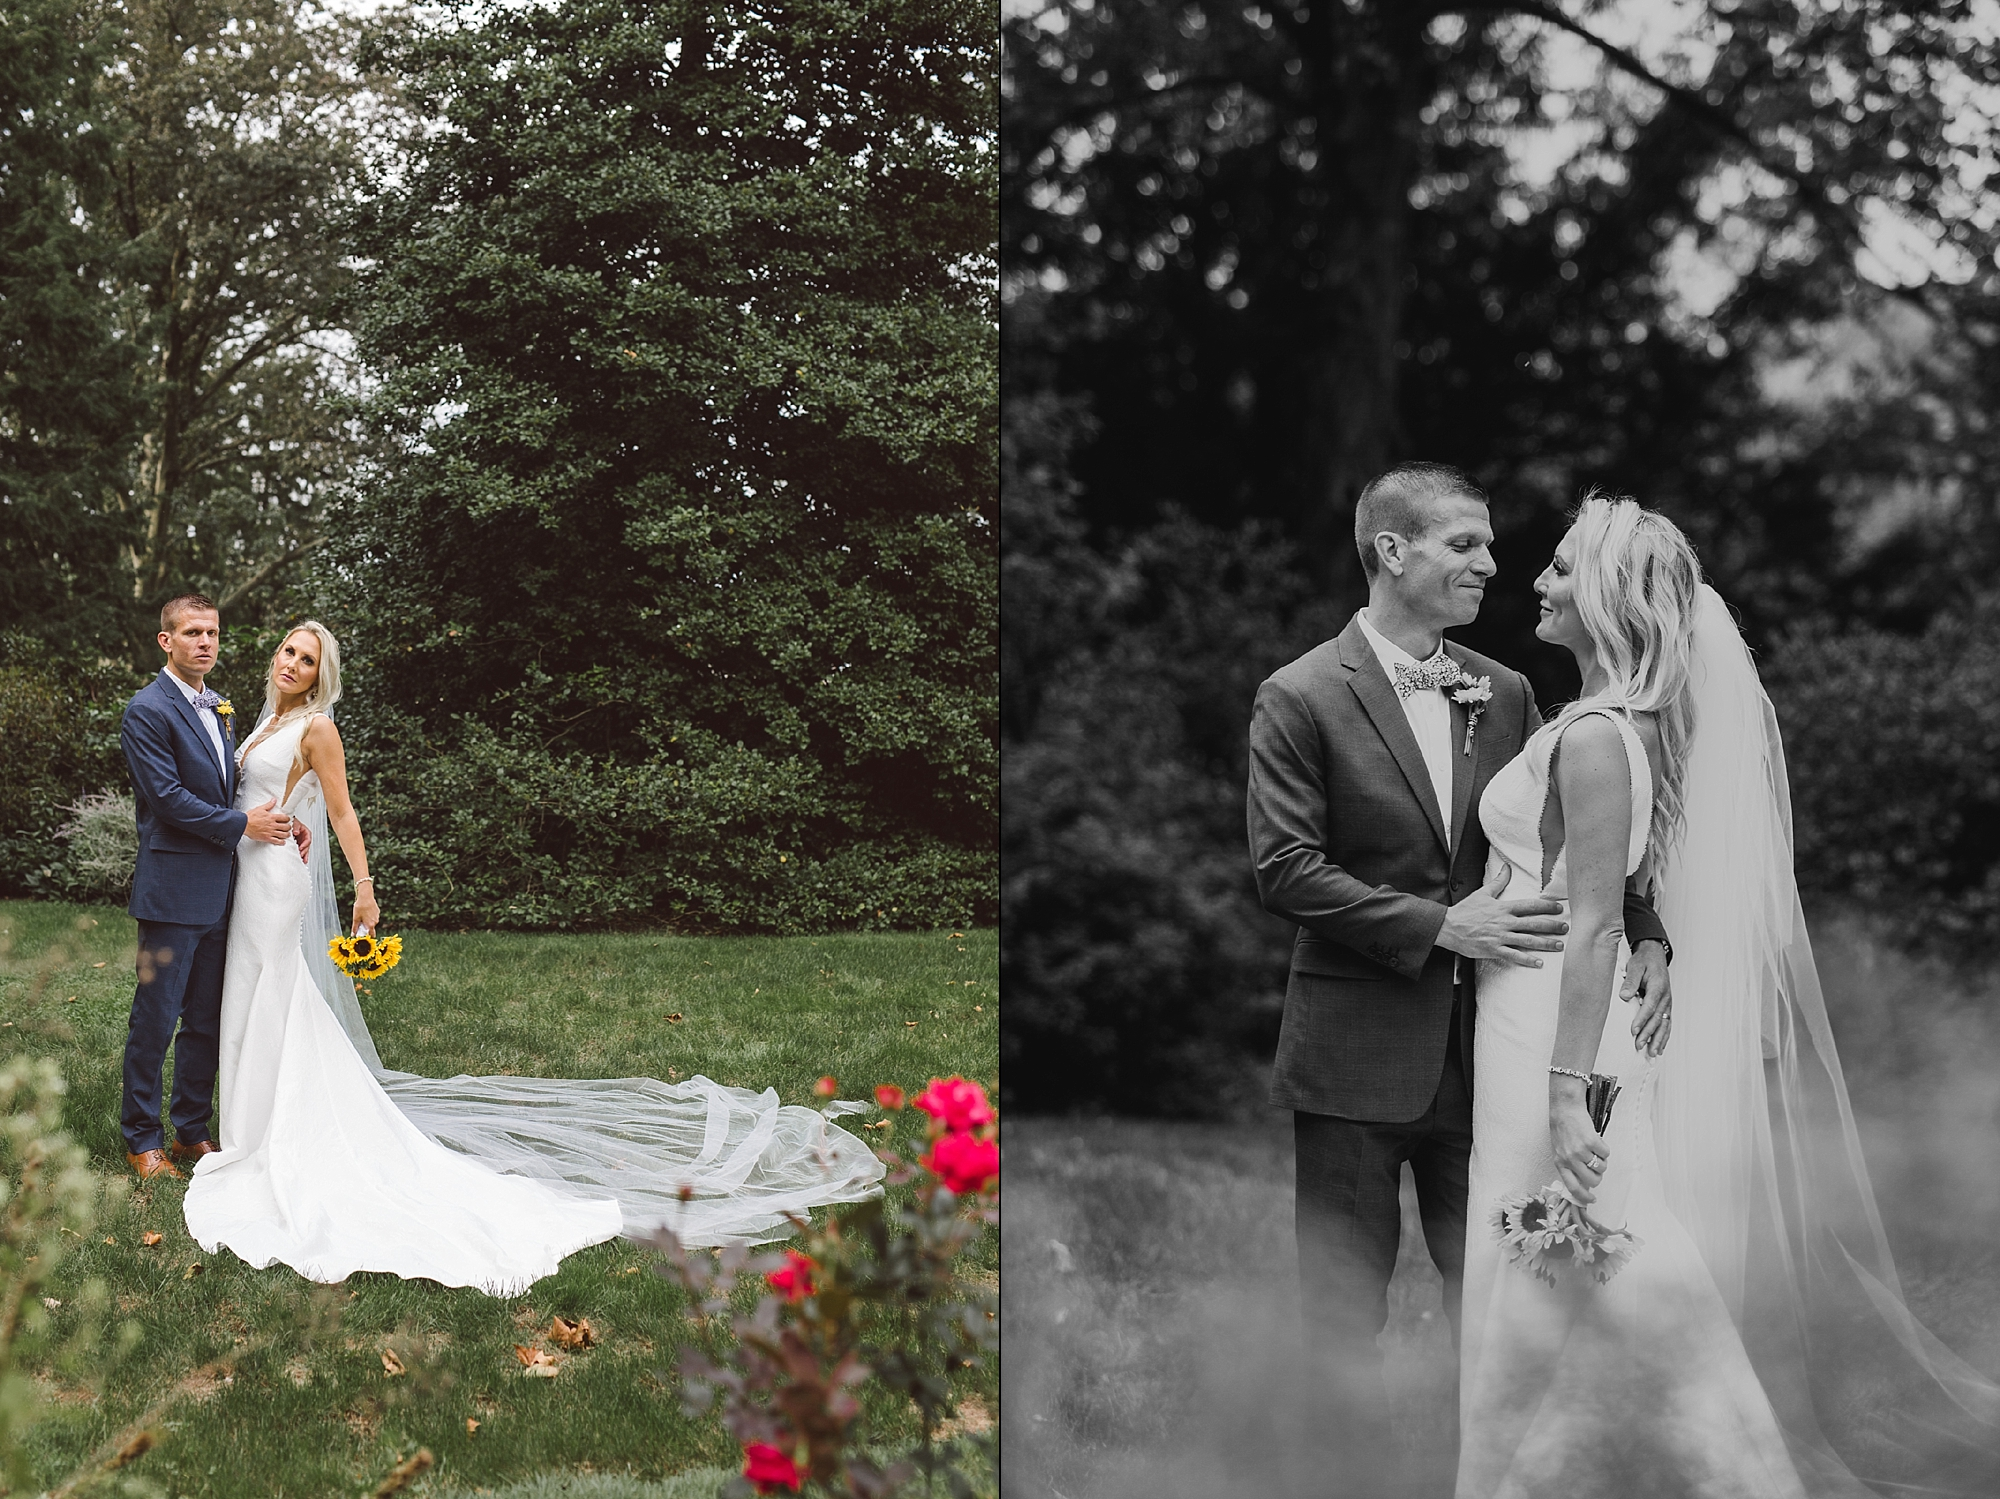 Druemore_Joe_Mac_Creative_Philadelphila_Wedding_Photography_drumore_estate_pequea_Best_lancaster_wedding_venues_0047.jpg